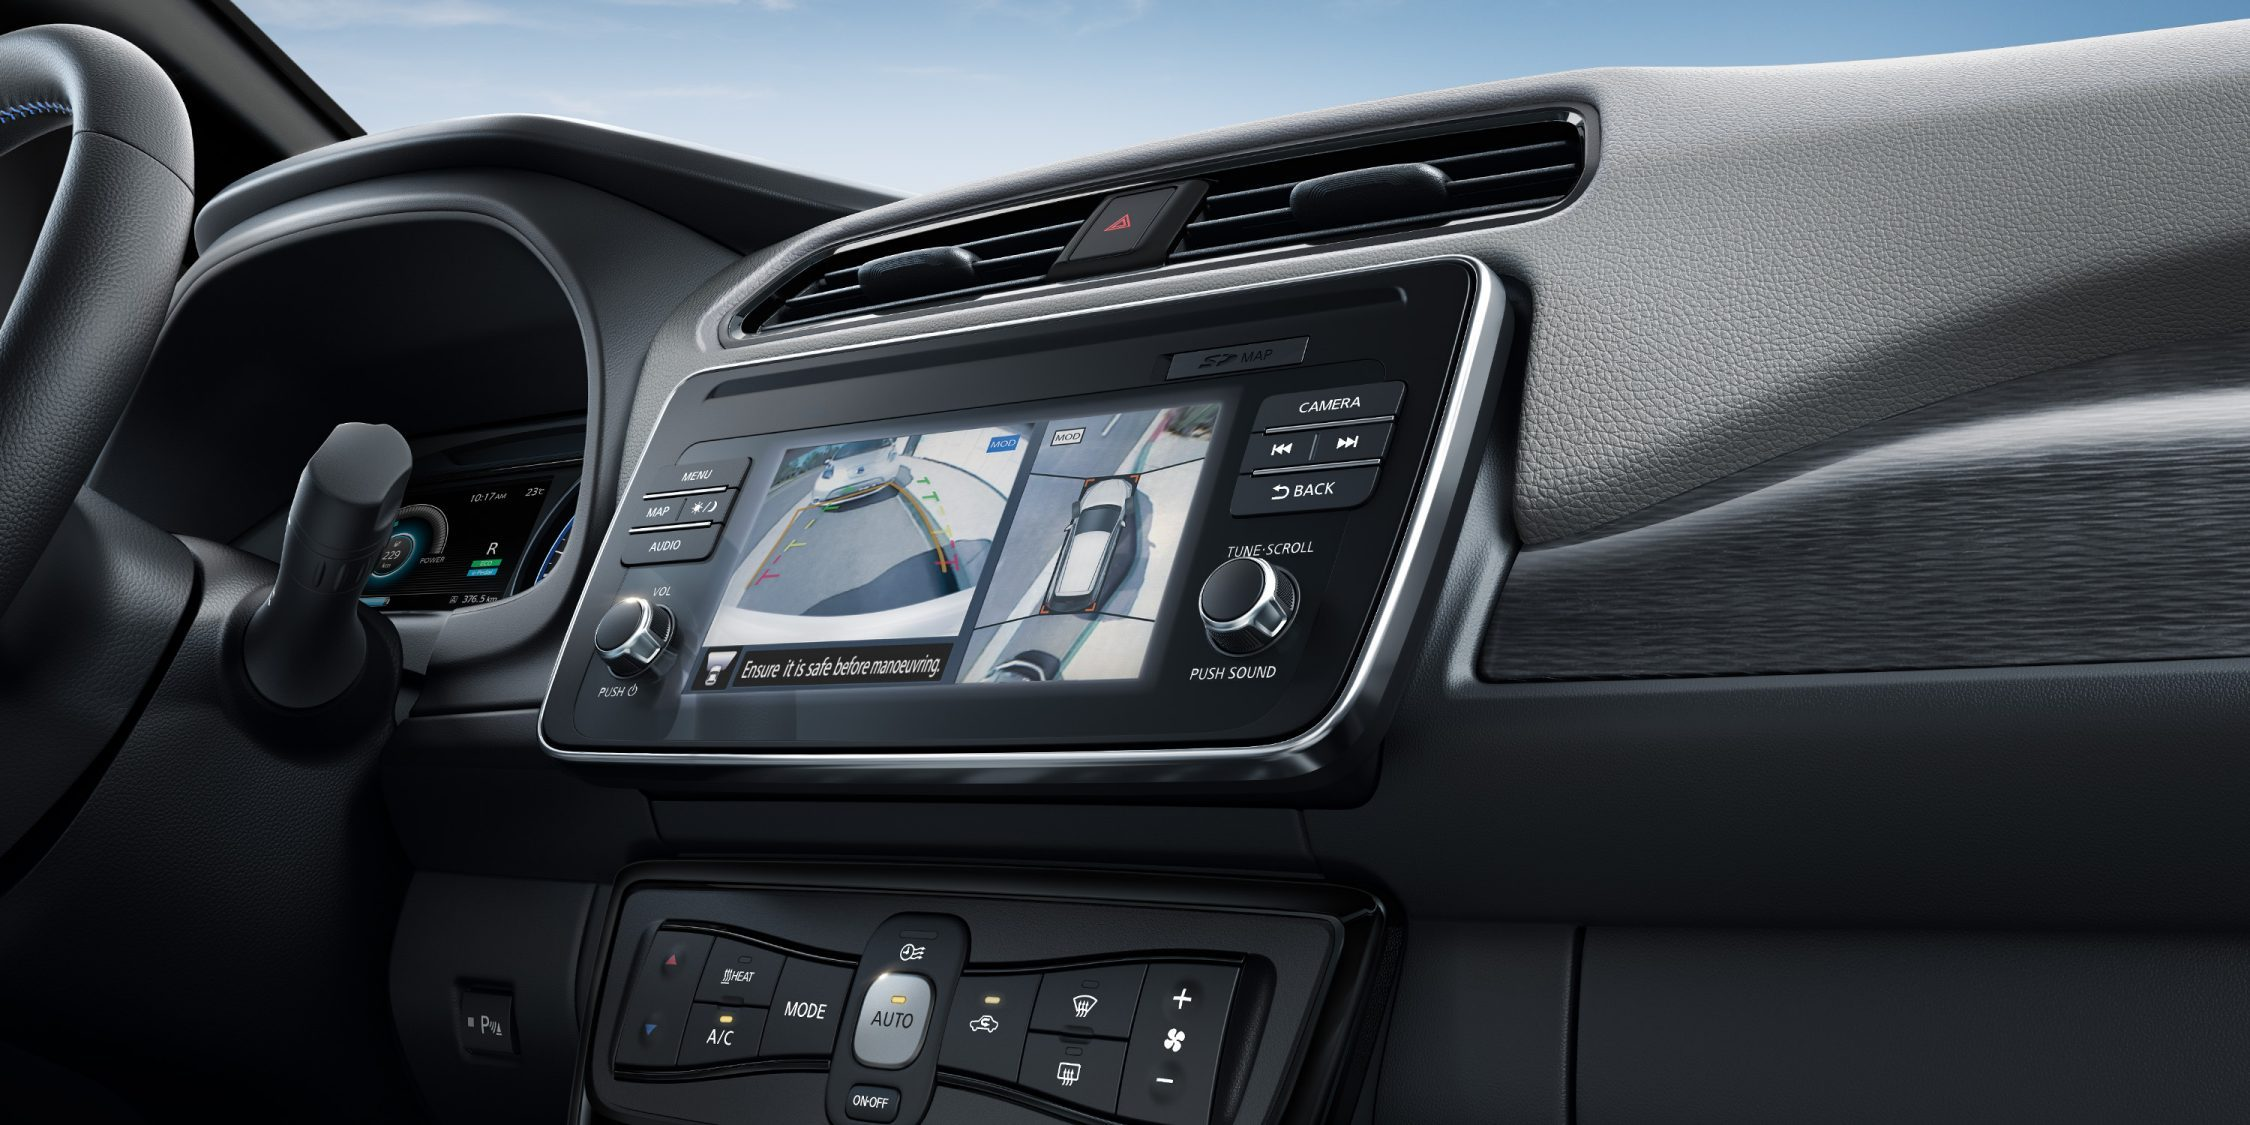 New Nissan LEAF interior showing around view monitor